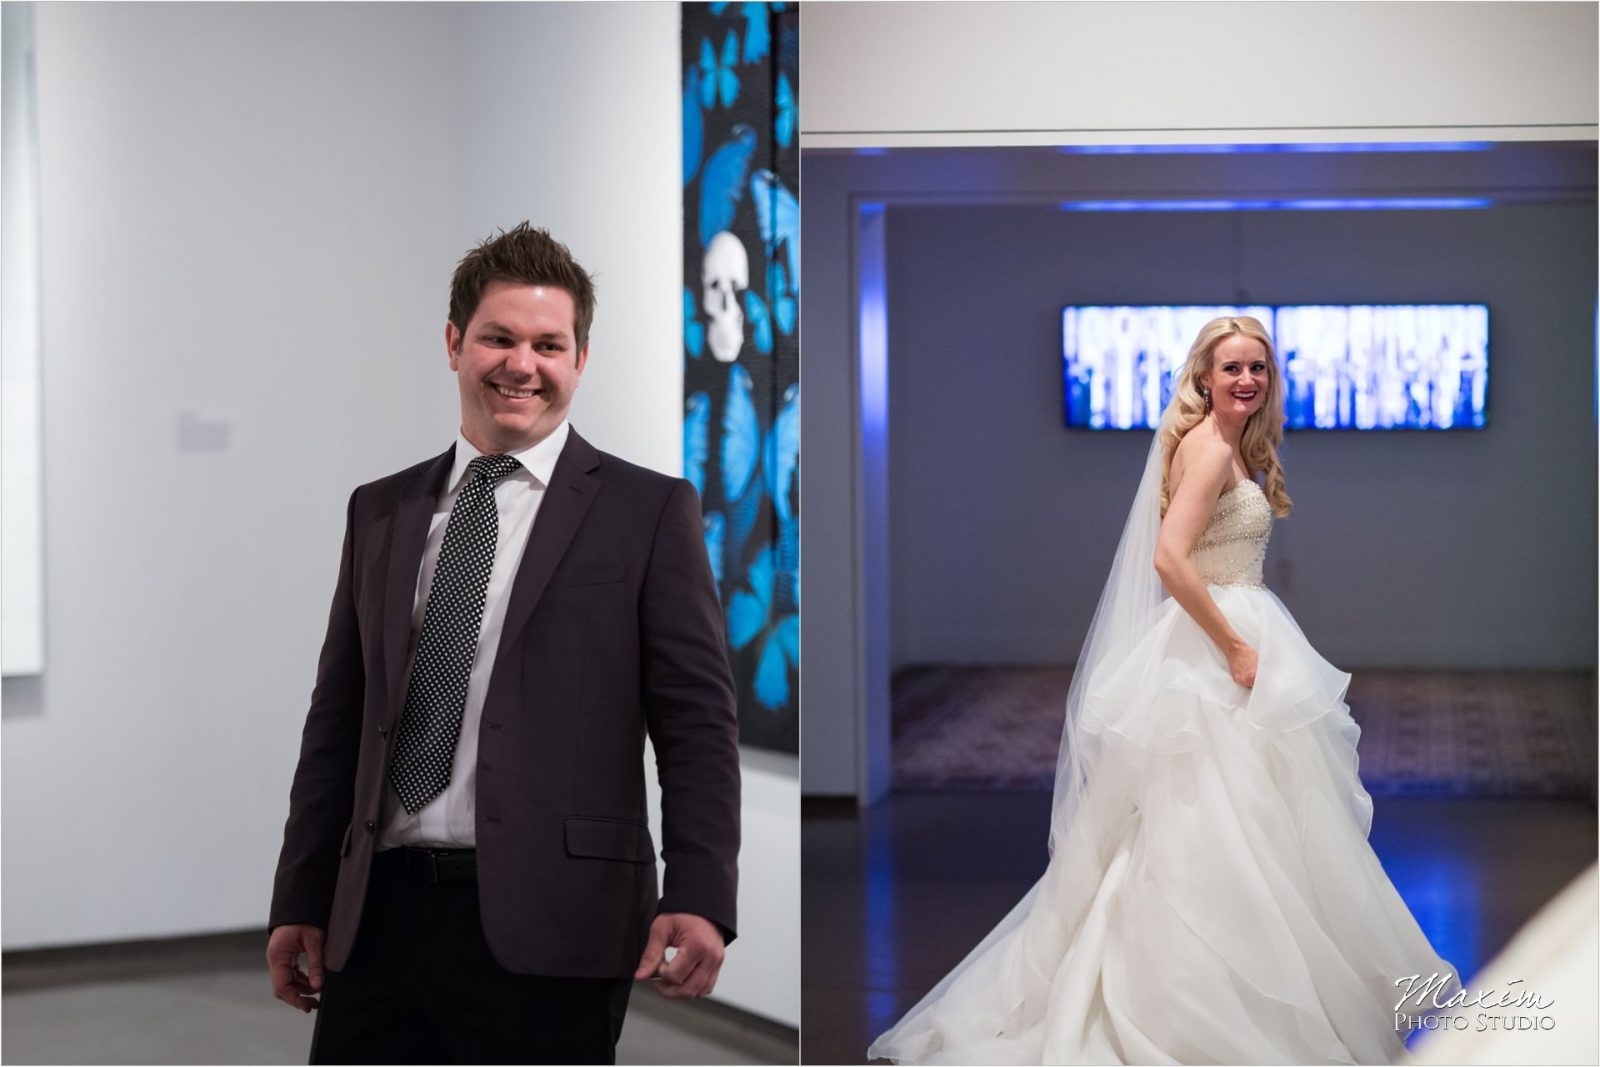 Cincinnati Wedding Photographers 21C Museum Hotel bride groom first look